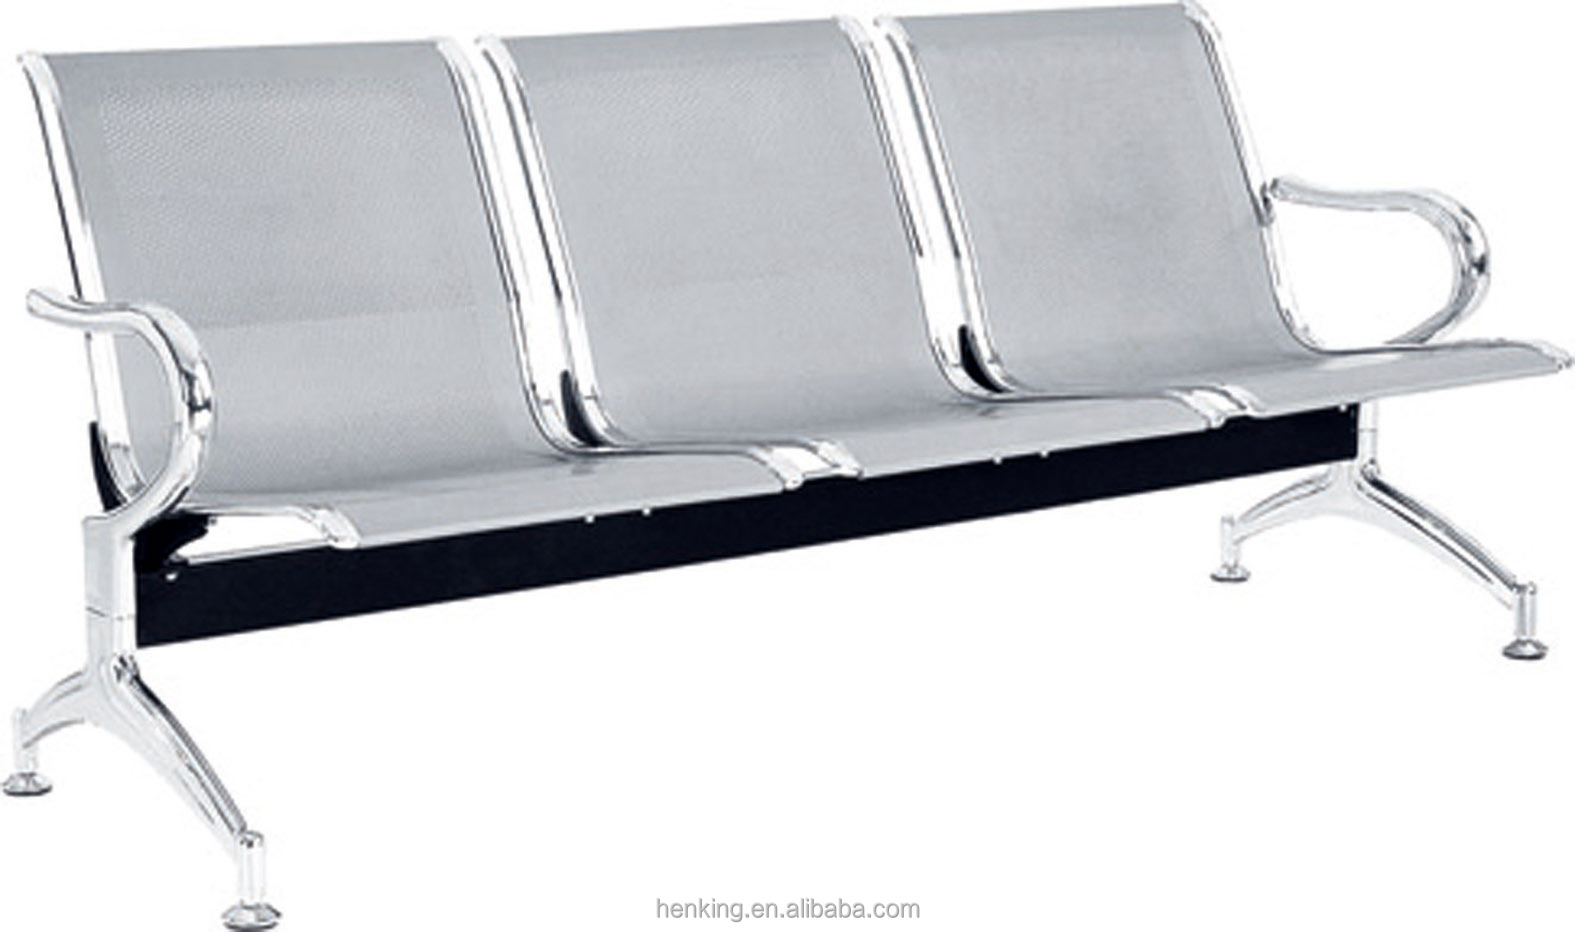 Sofa Set In Metal Sofa Steel Stainless Steel Sofas Archiproducts Thesofa